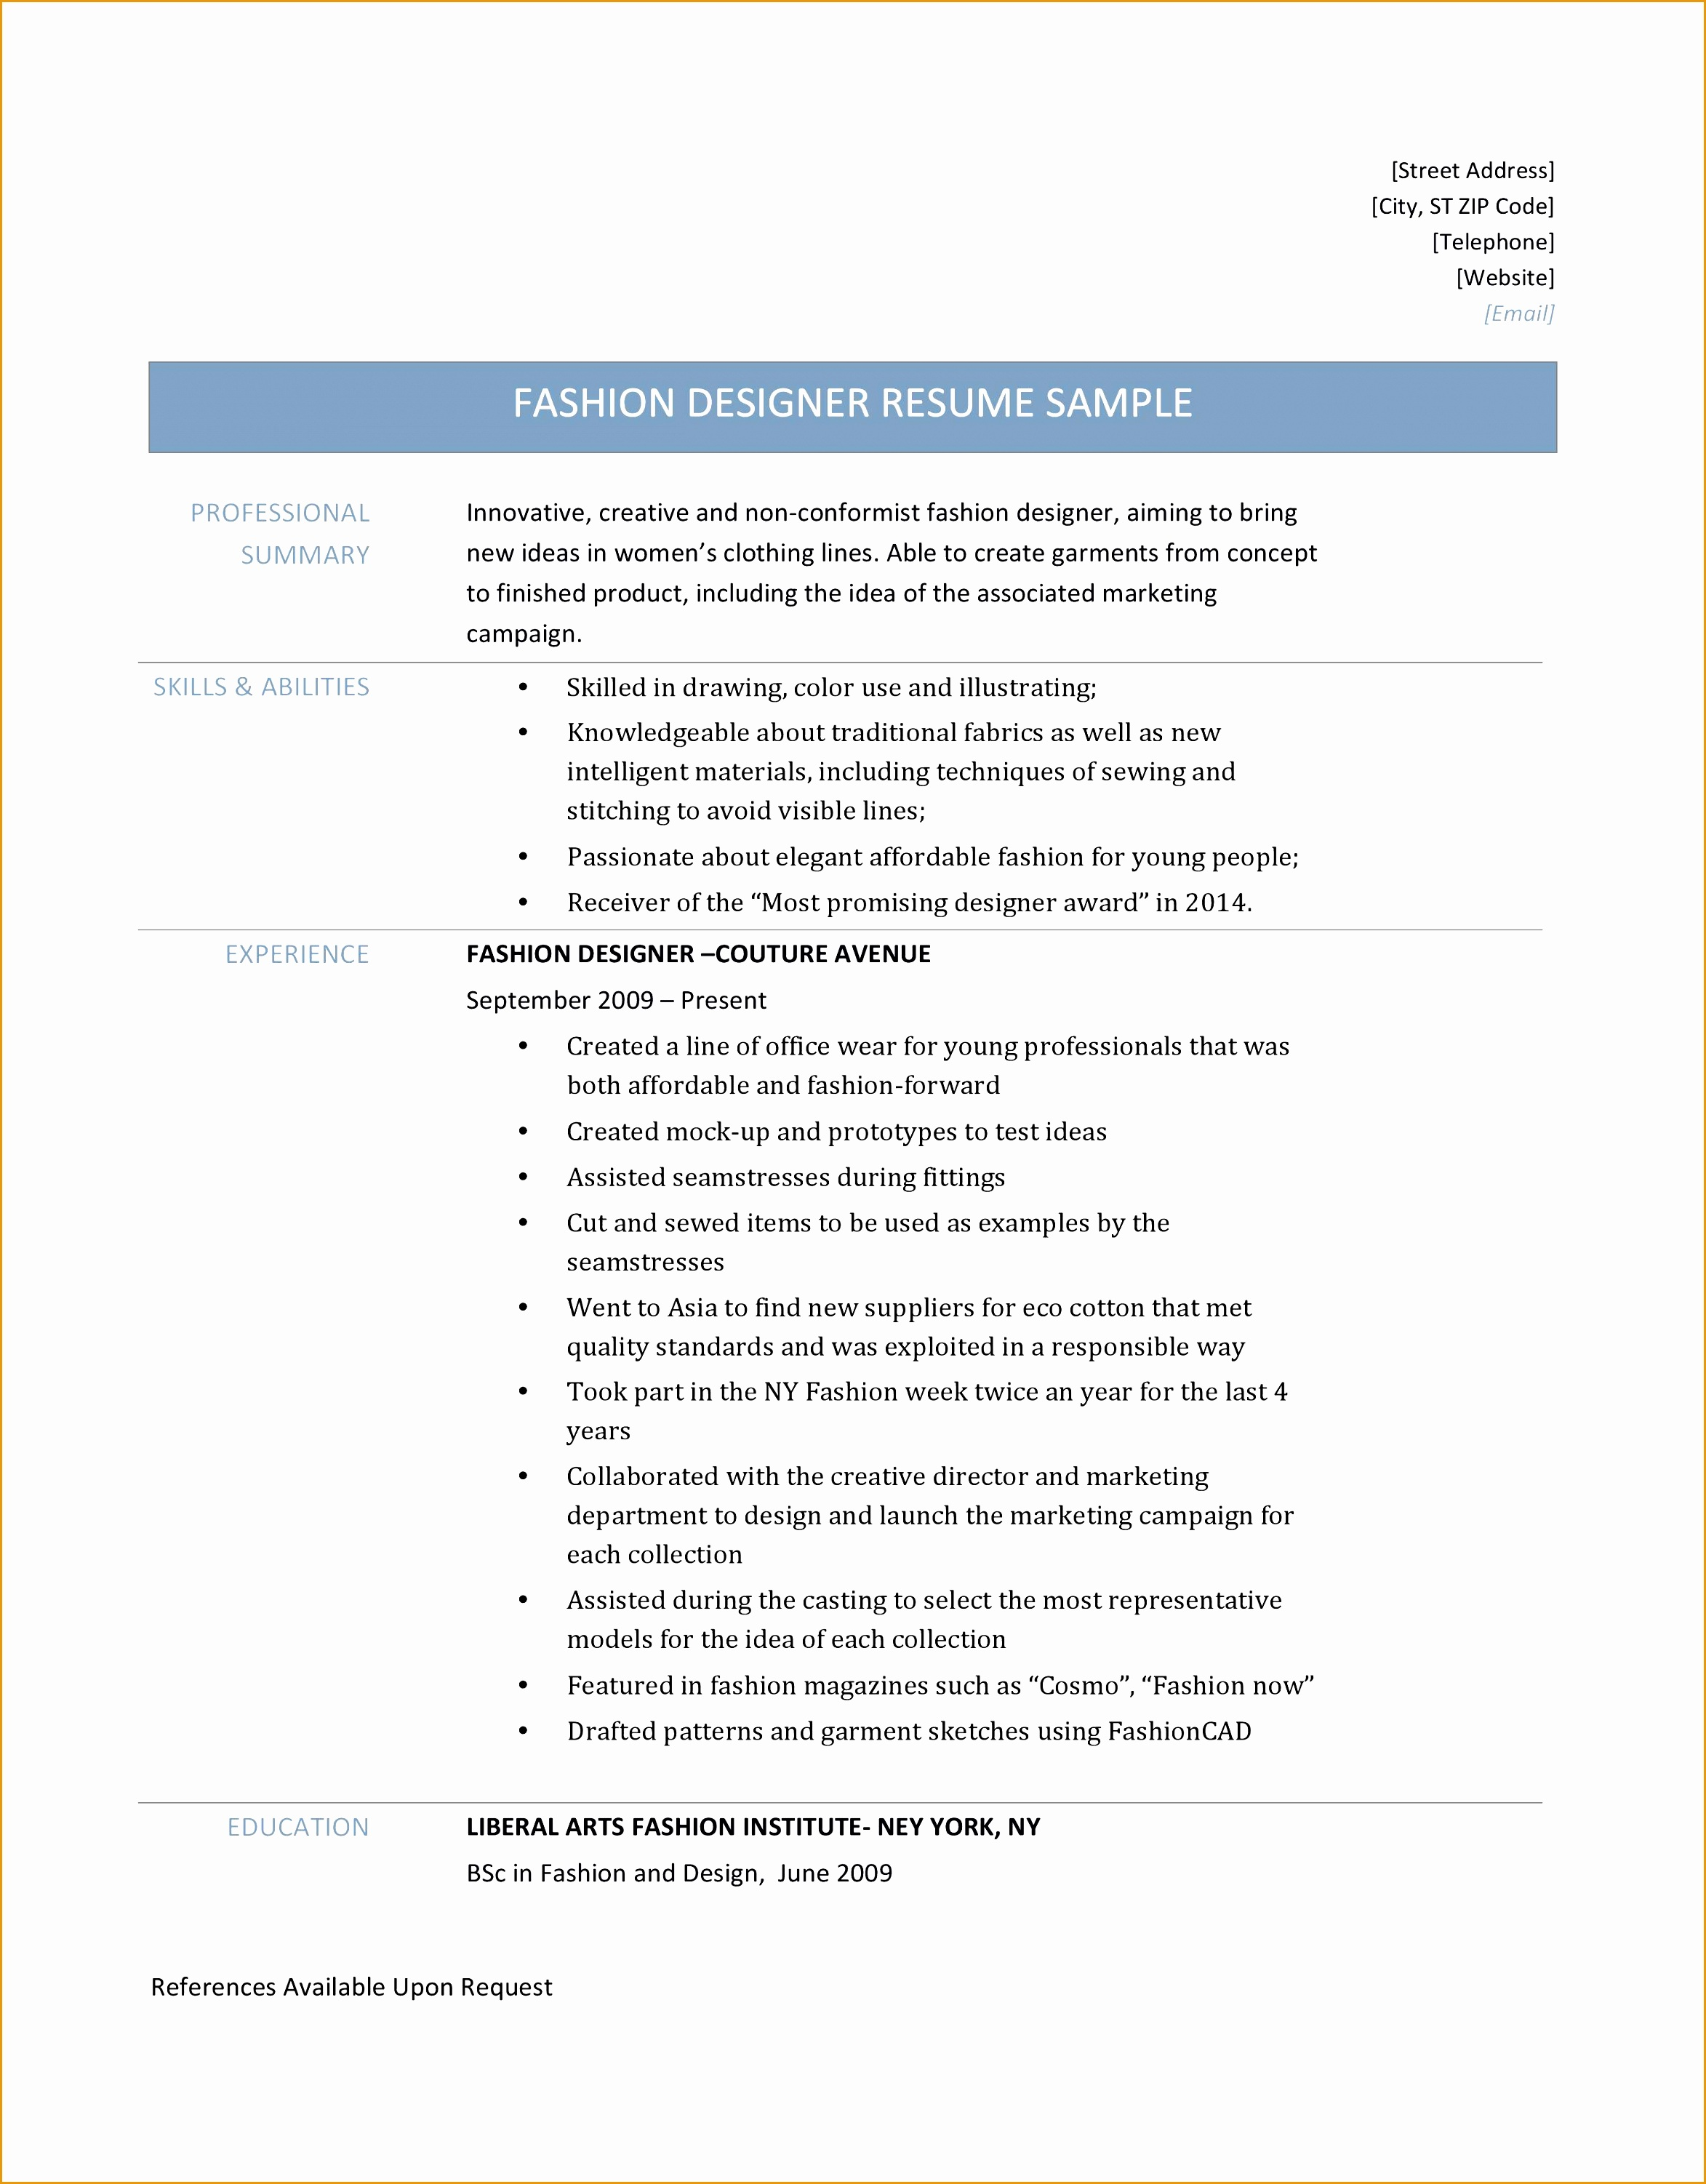 Fashion Resume Format 6 Fashion Design Resume Samples Free Samples Examples